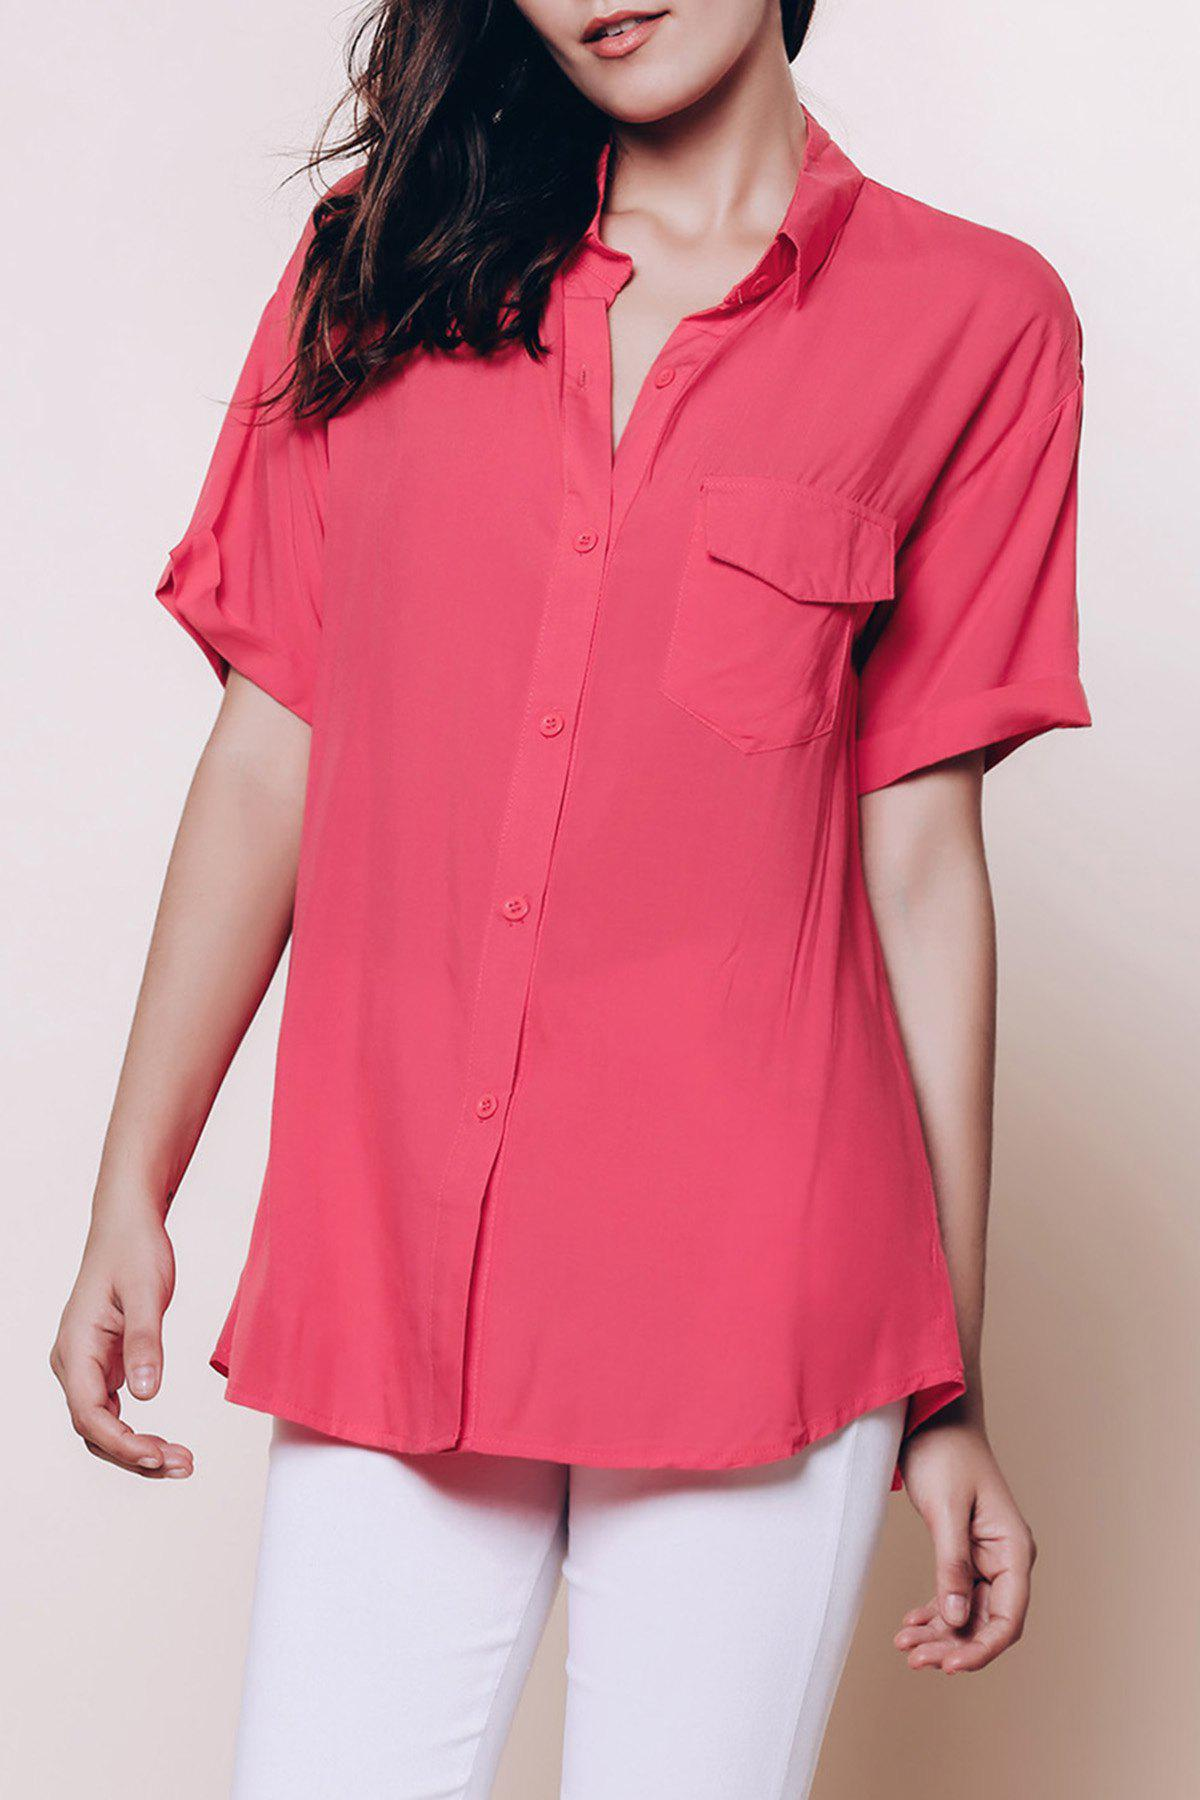 Chic Short Sleeve Pure Color Shirt For Women